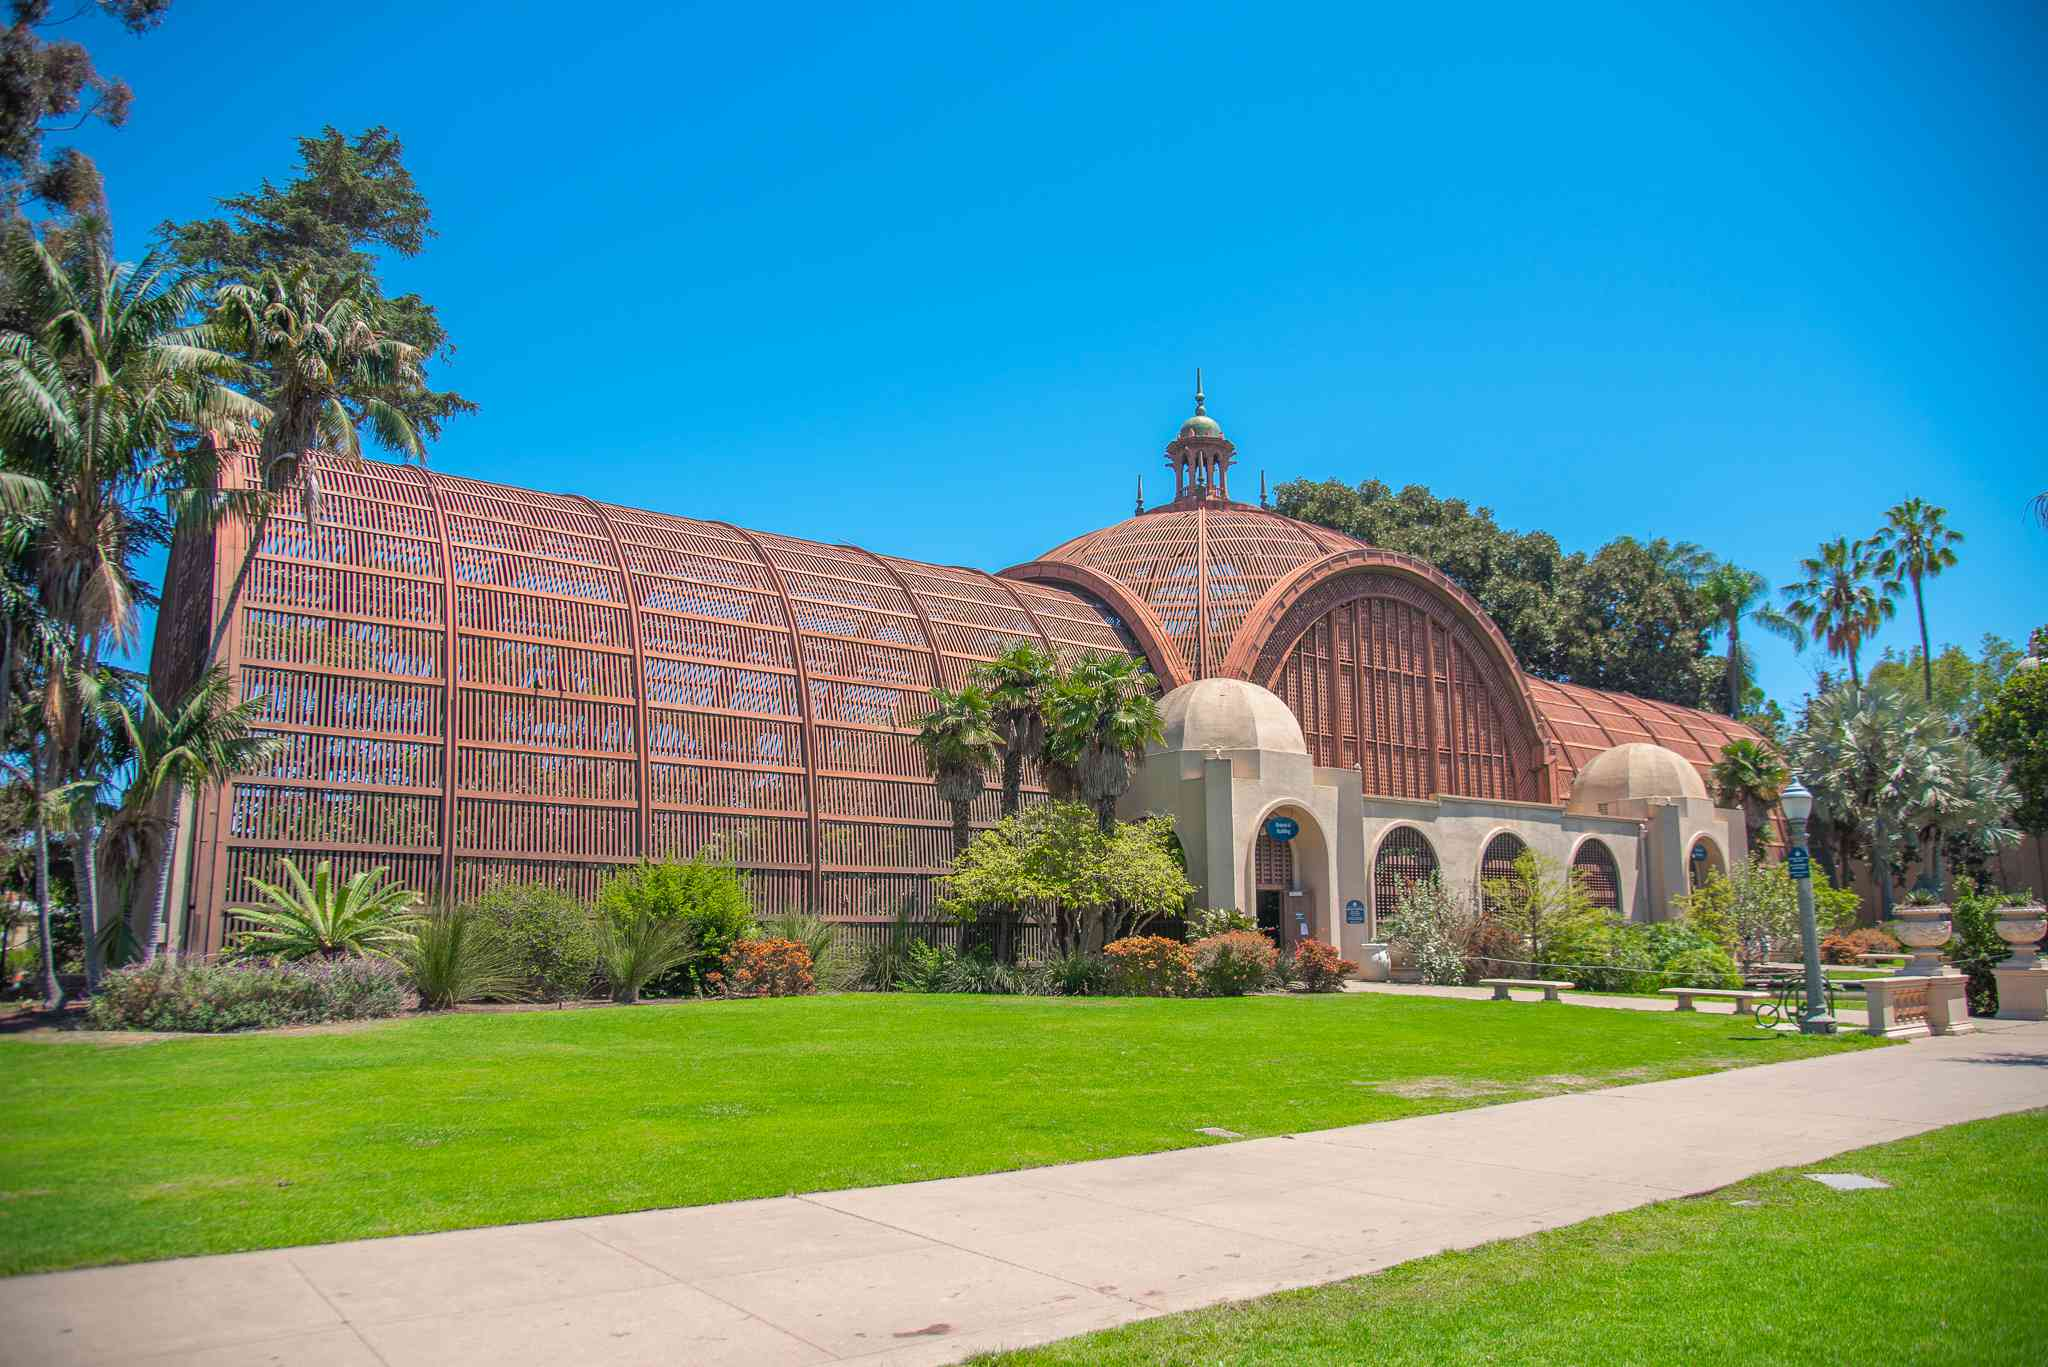 The Botanical Building at Balboa Park in San Diego